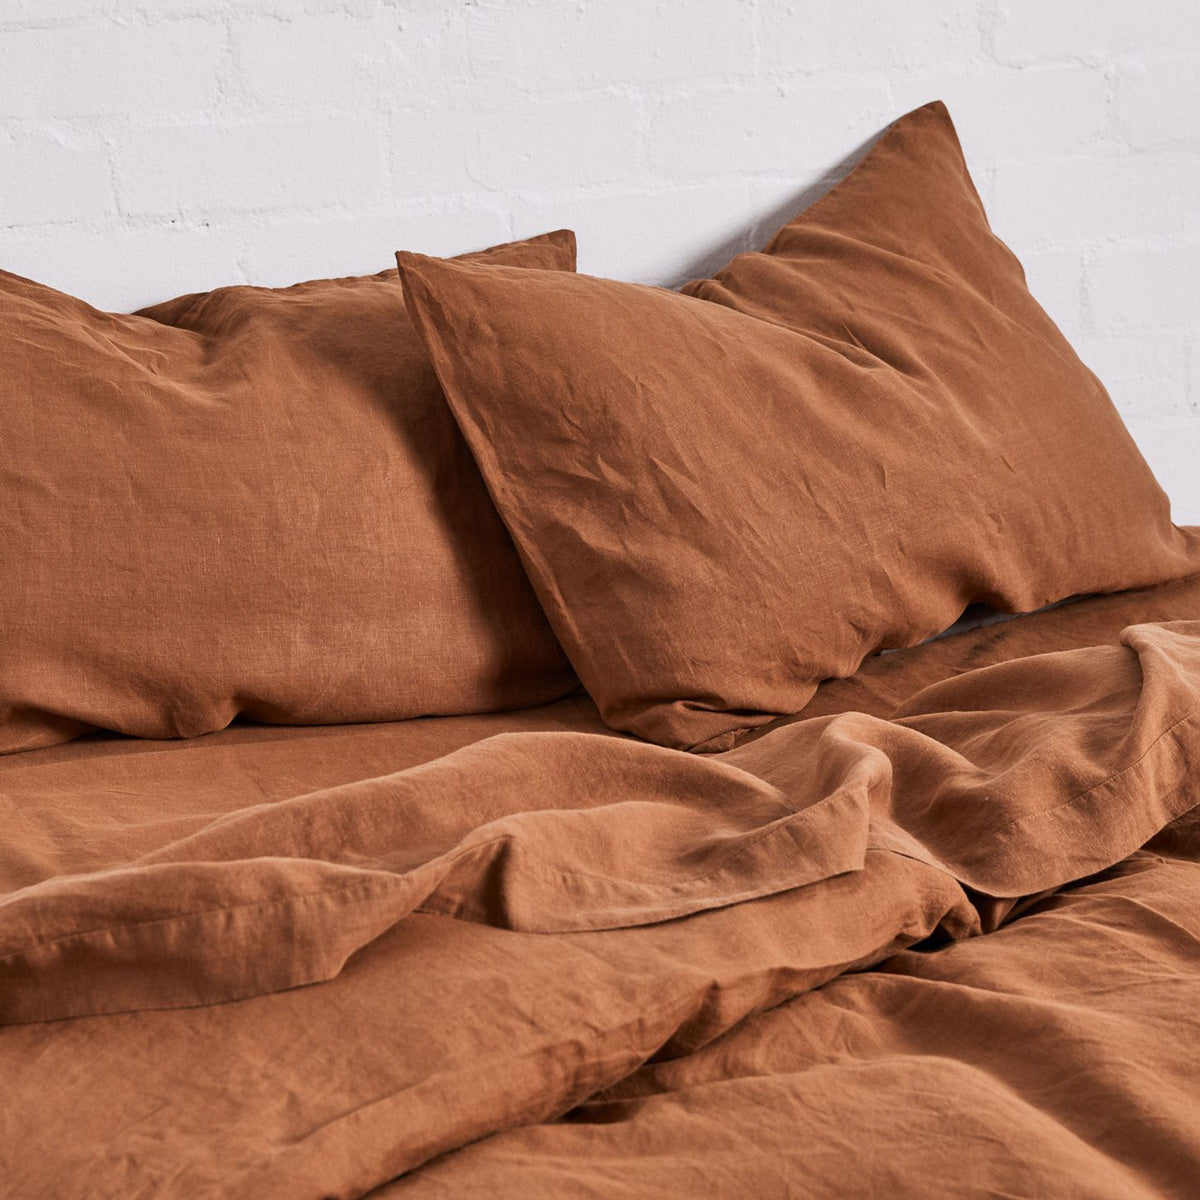 In Bed Store We Are Triibe Linen at Plyroom in Tobacco and Rust